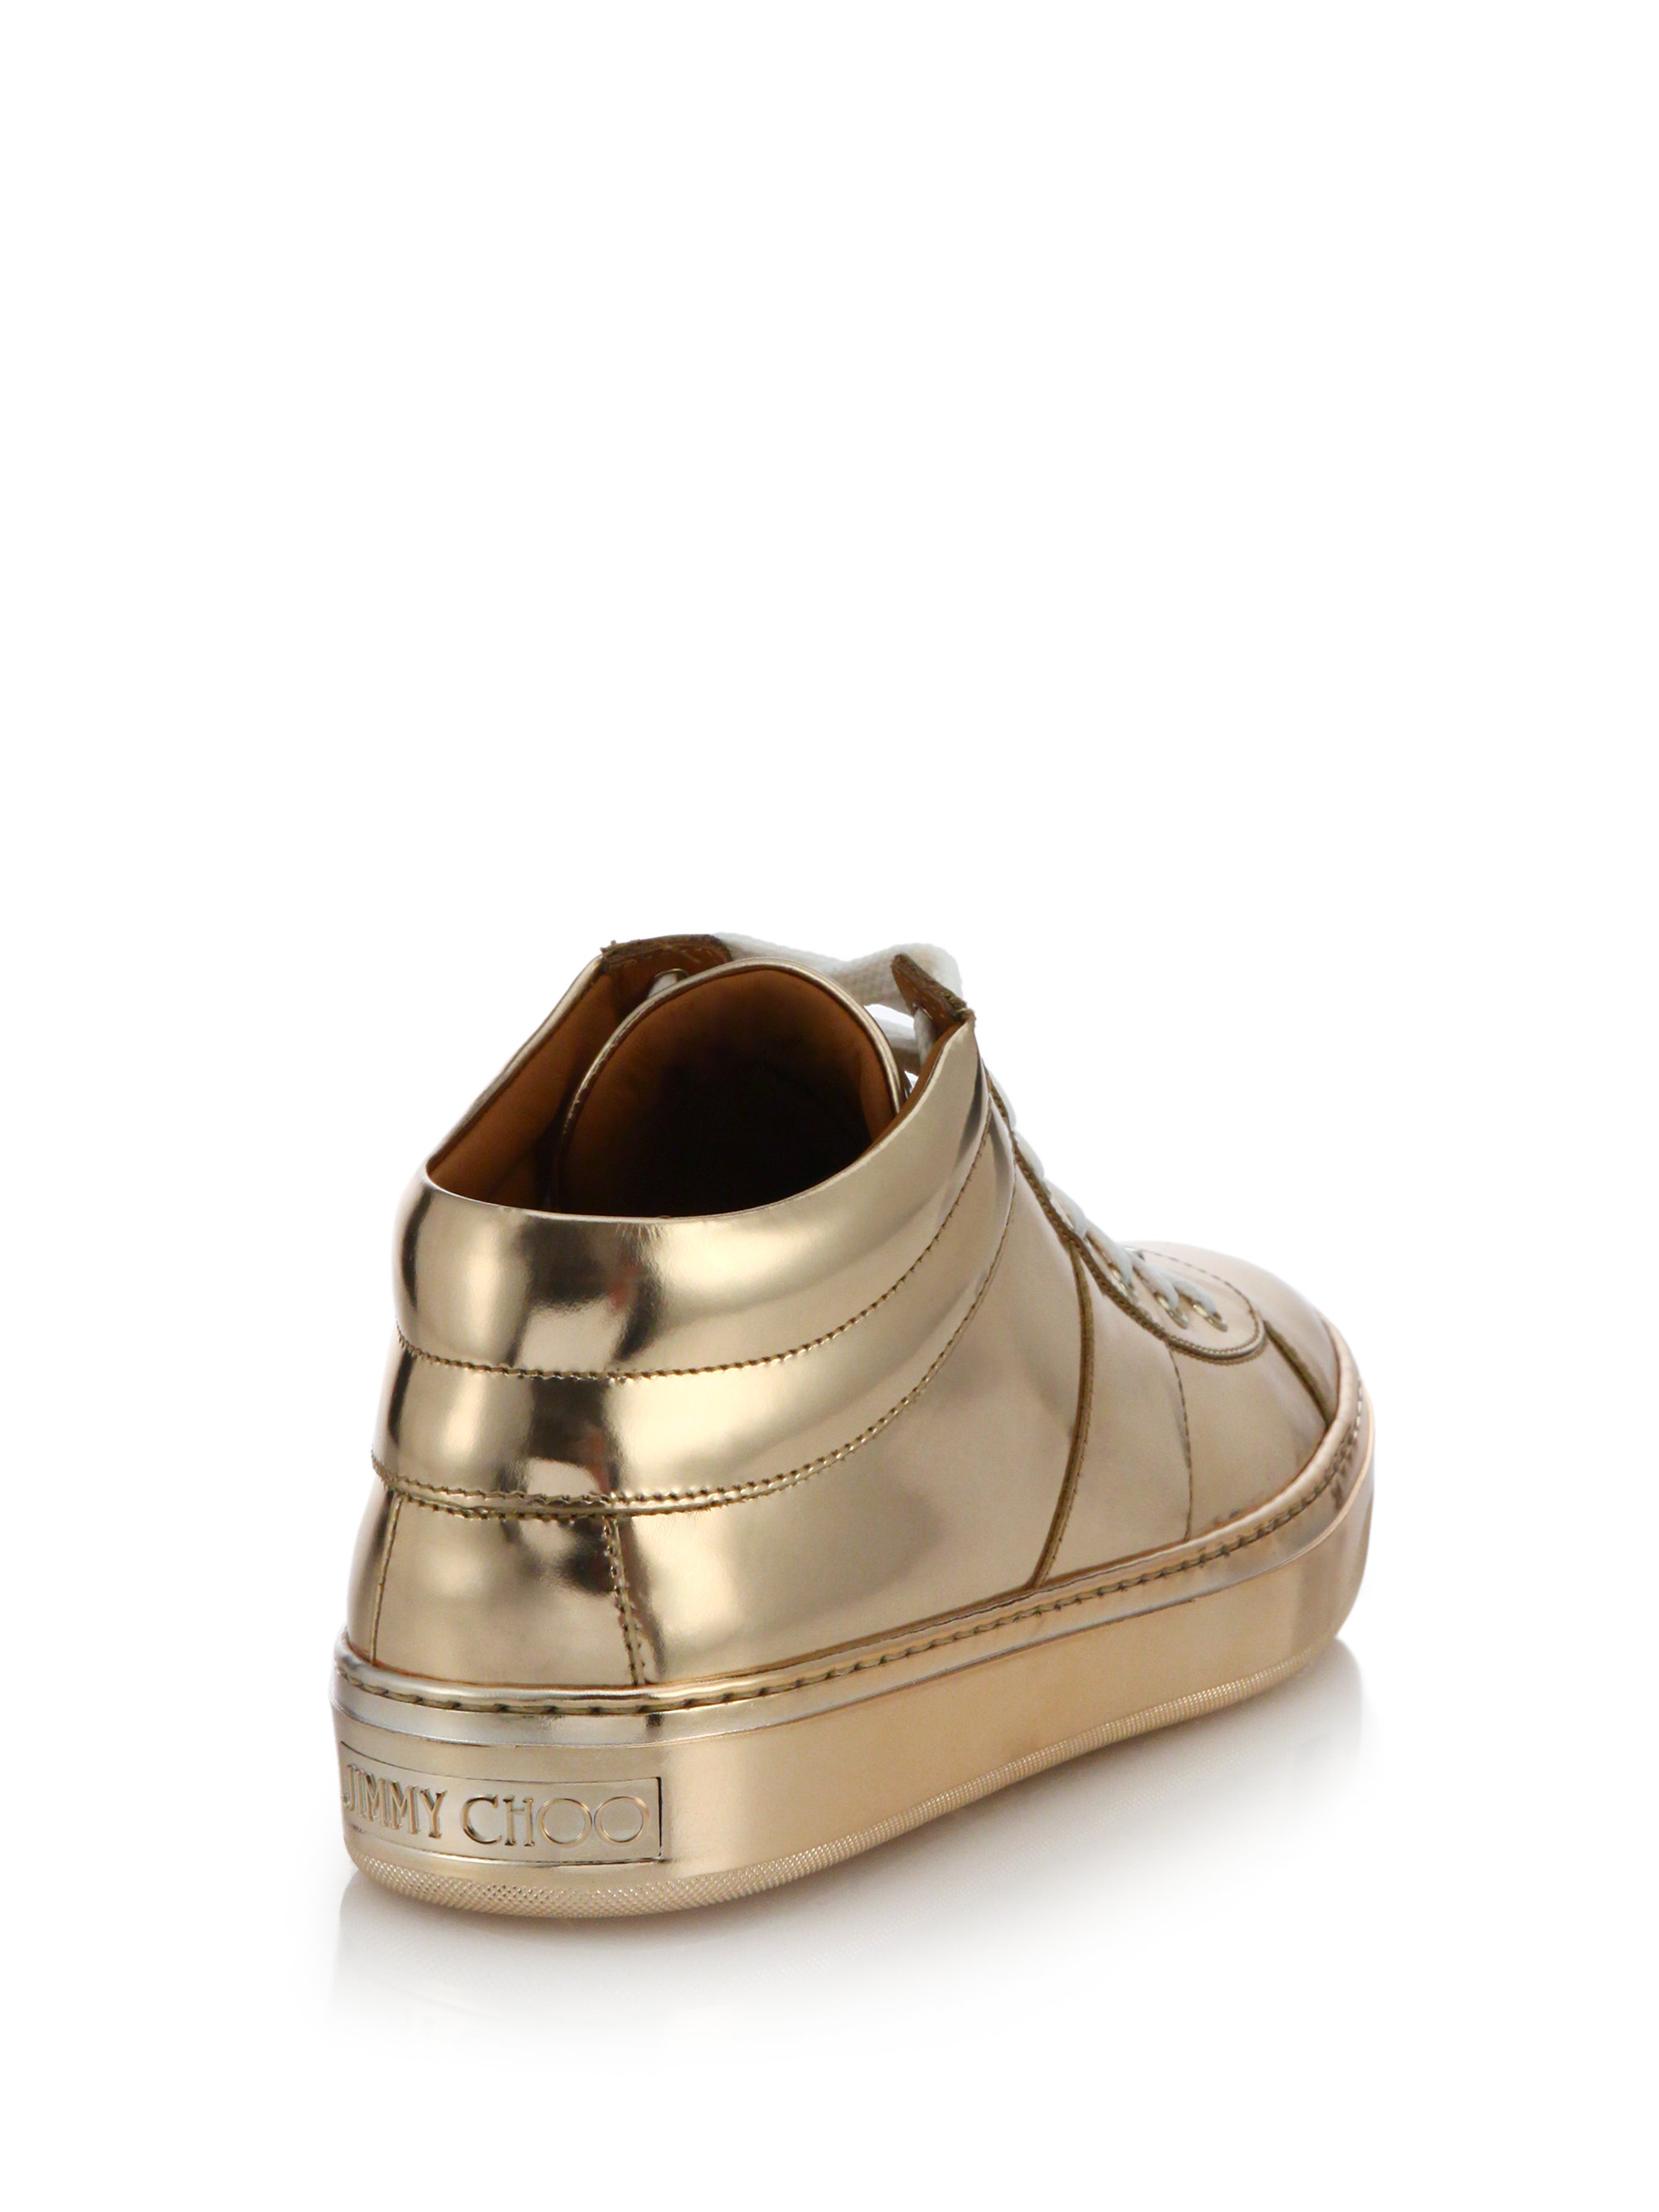 a9e719cc347e jimmy-choo-gold-bells-metallic-leather-sneakers-product-2-592110638-normal.jpeg